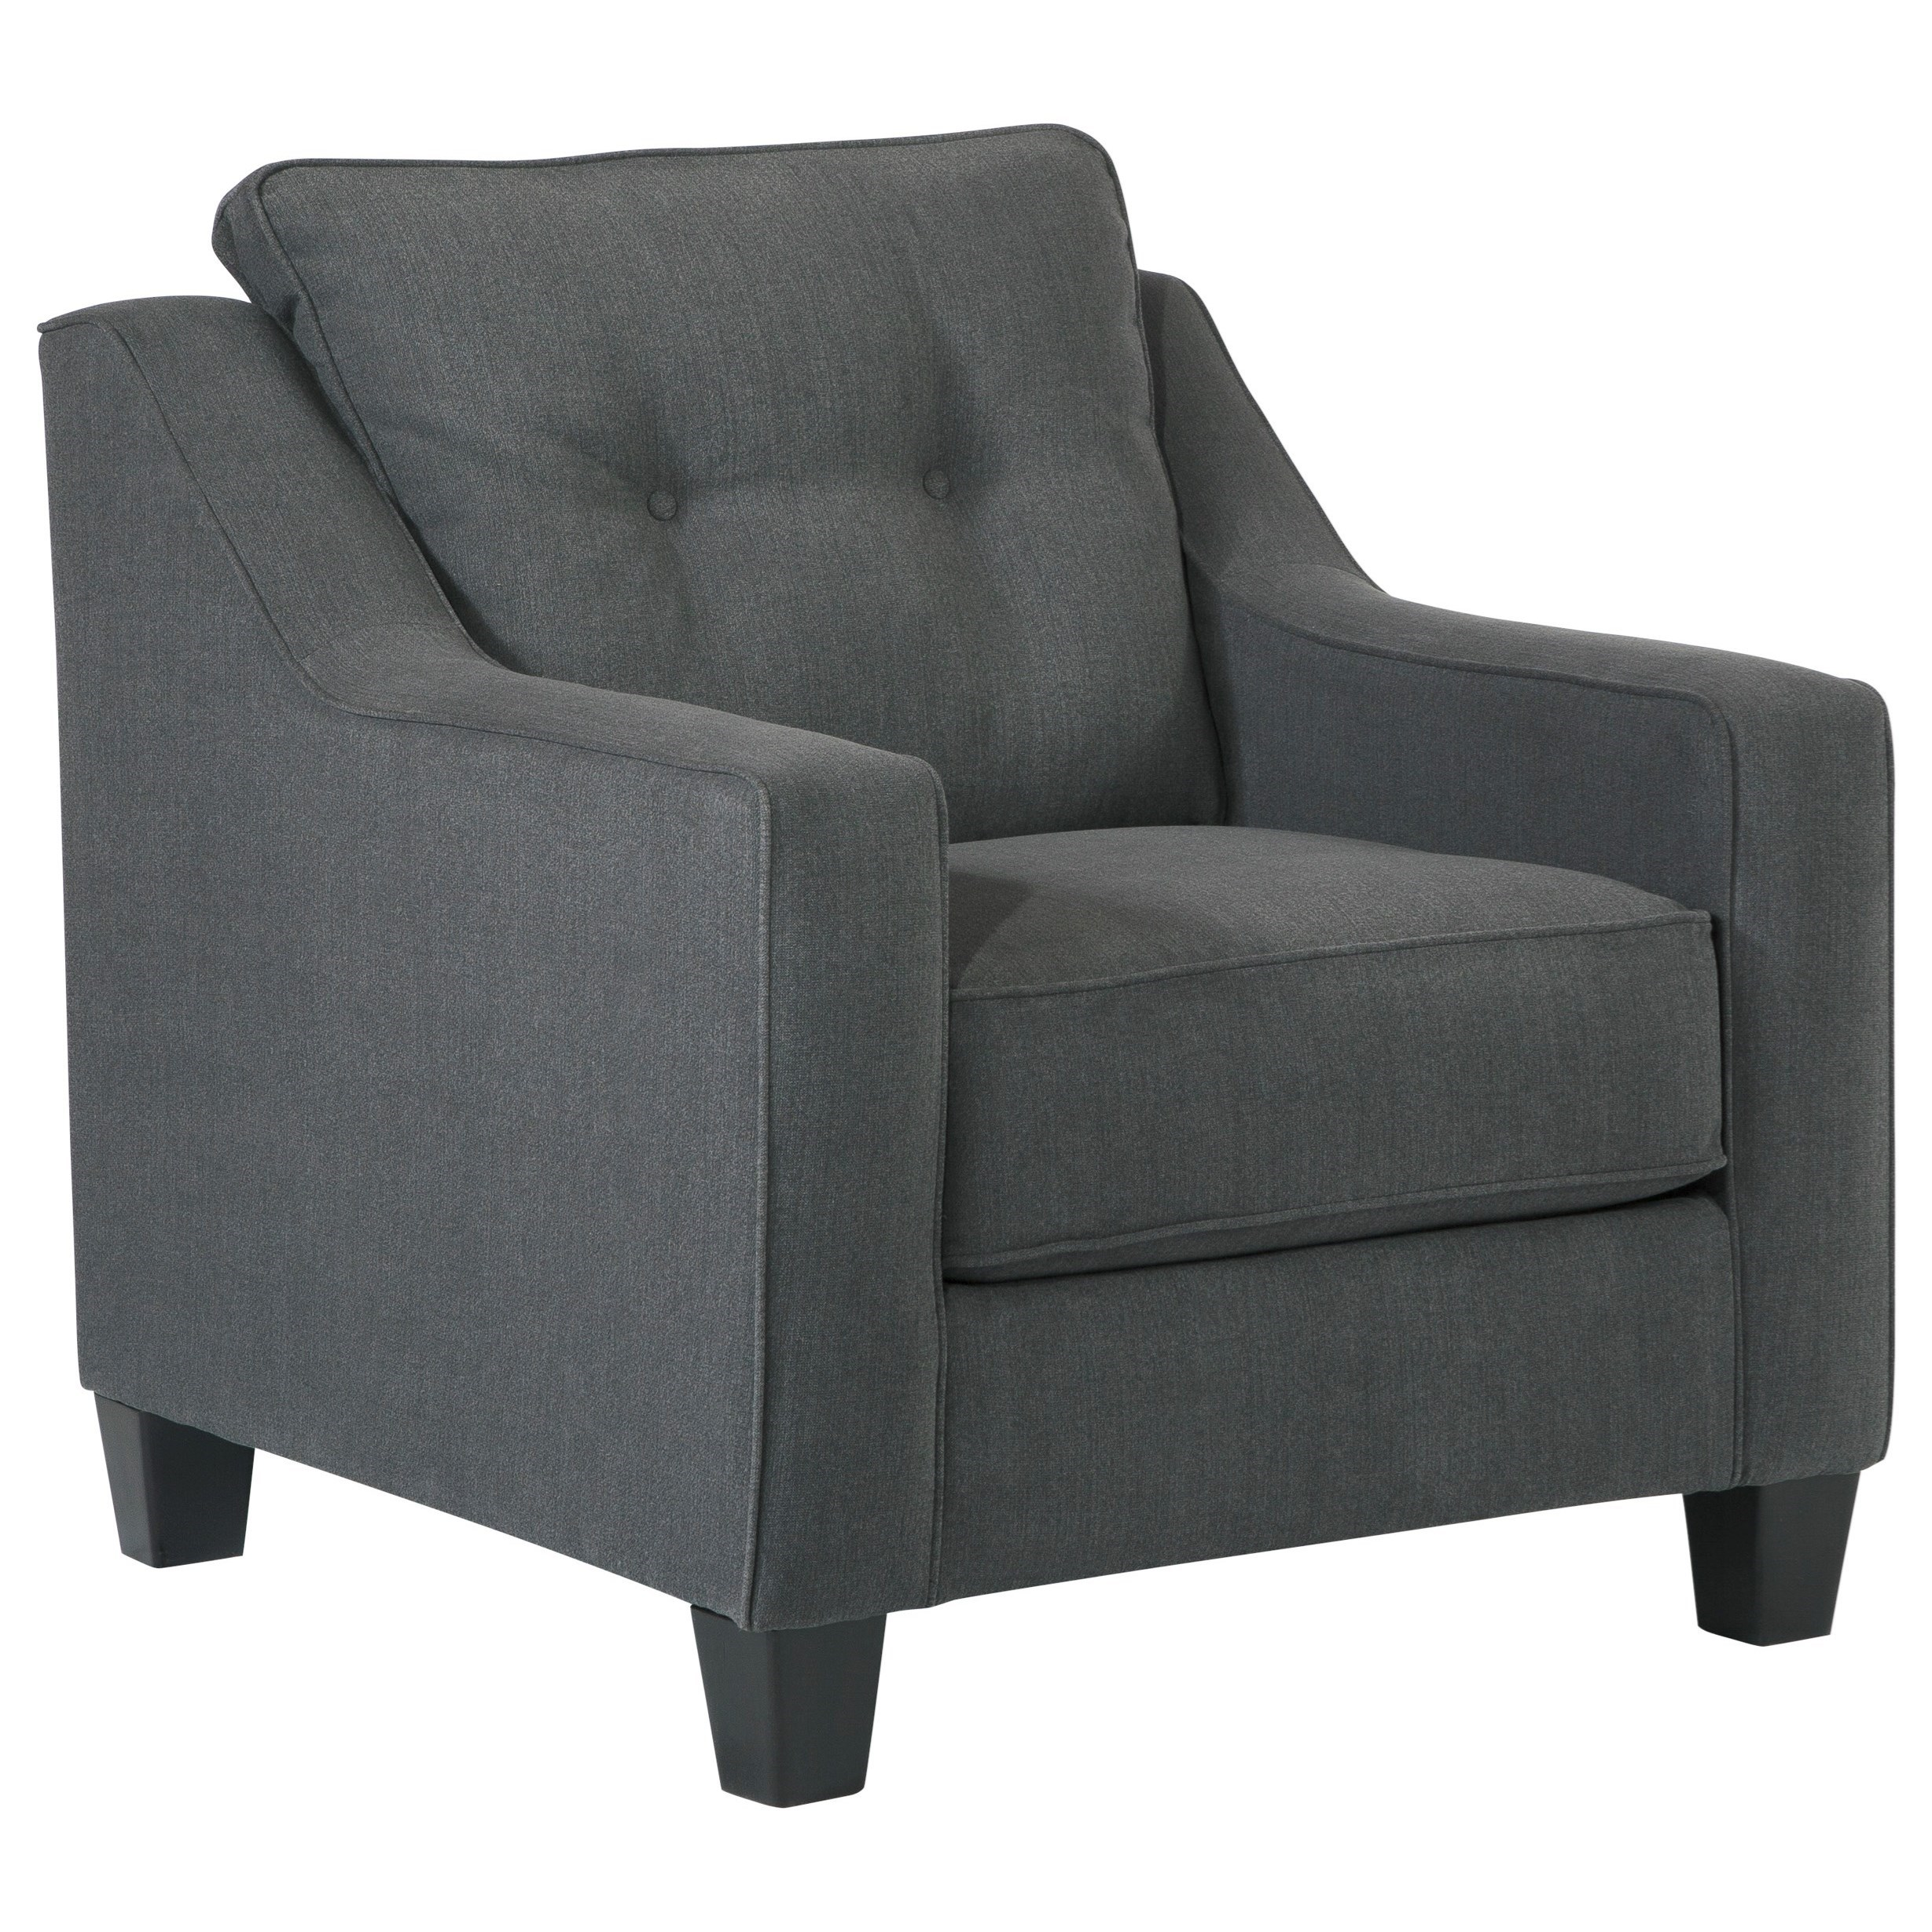 Shayla Chair by Ashley Furniture at Lapeer Furniture & Mattress Center